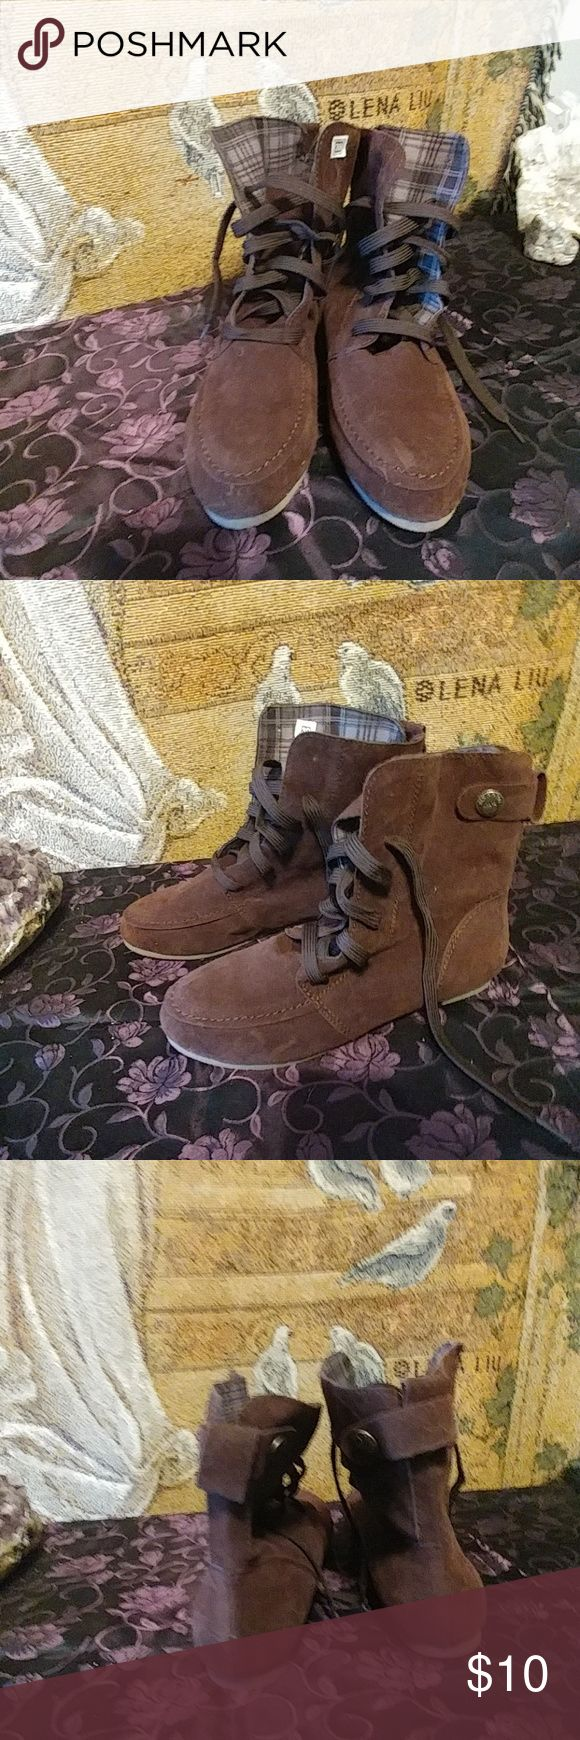 🎉BOGO 1/2 OFF 👢🆕 Ankle Boots👢 Brown Ankle Boots. Great for summer would look cute with shorts.   Really cute.  I bought them never wore them.  Flat sole.  No brand name I can see.  The size sticker us still inside .  So is the paper from packaging.   ⭐PLEASE READ BELOW FOR SIZING. ⭐  ⭐⭐⭐Their makes as a Euro 39 meaning size 9  These are not true to size. Their more of a Euro 37  Meaning size 7.  I'm guessing these were a size up shoe to fit right . I can't remember. ⭐⭐⭐⭐   ❎No Trades ❎No…